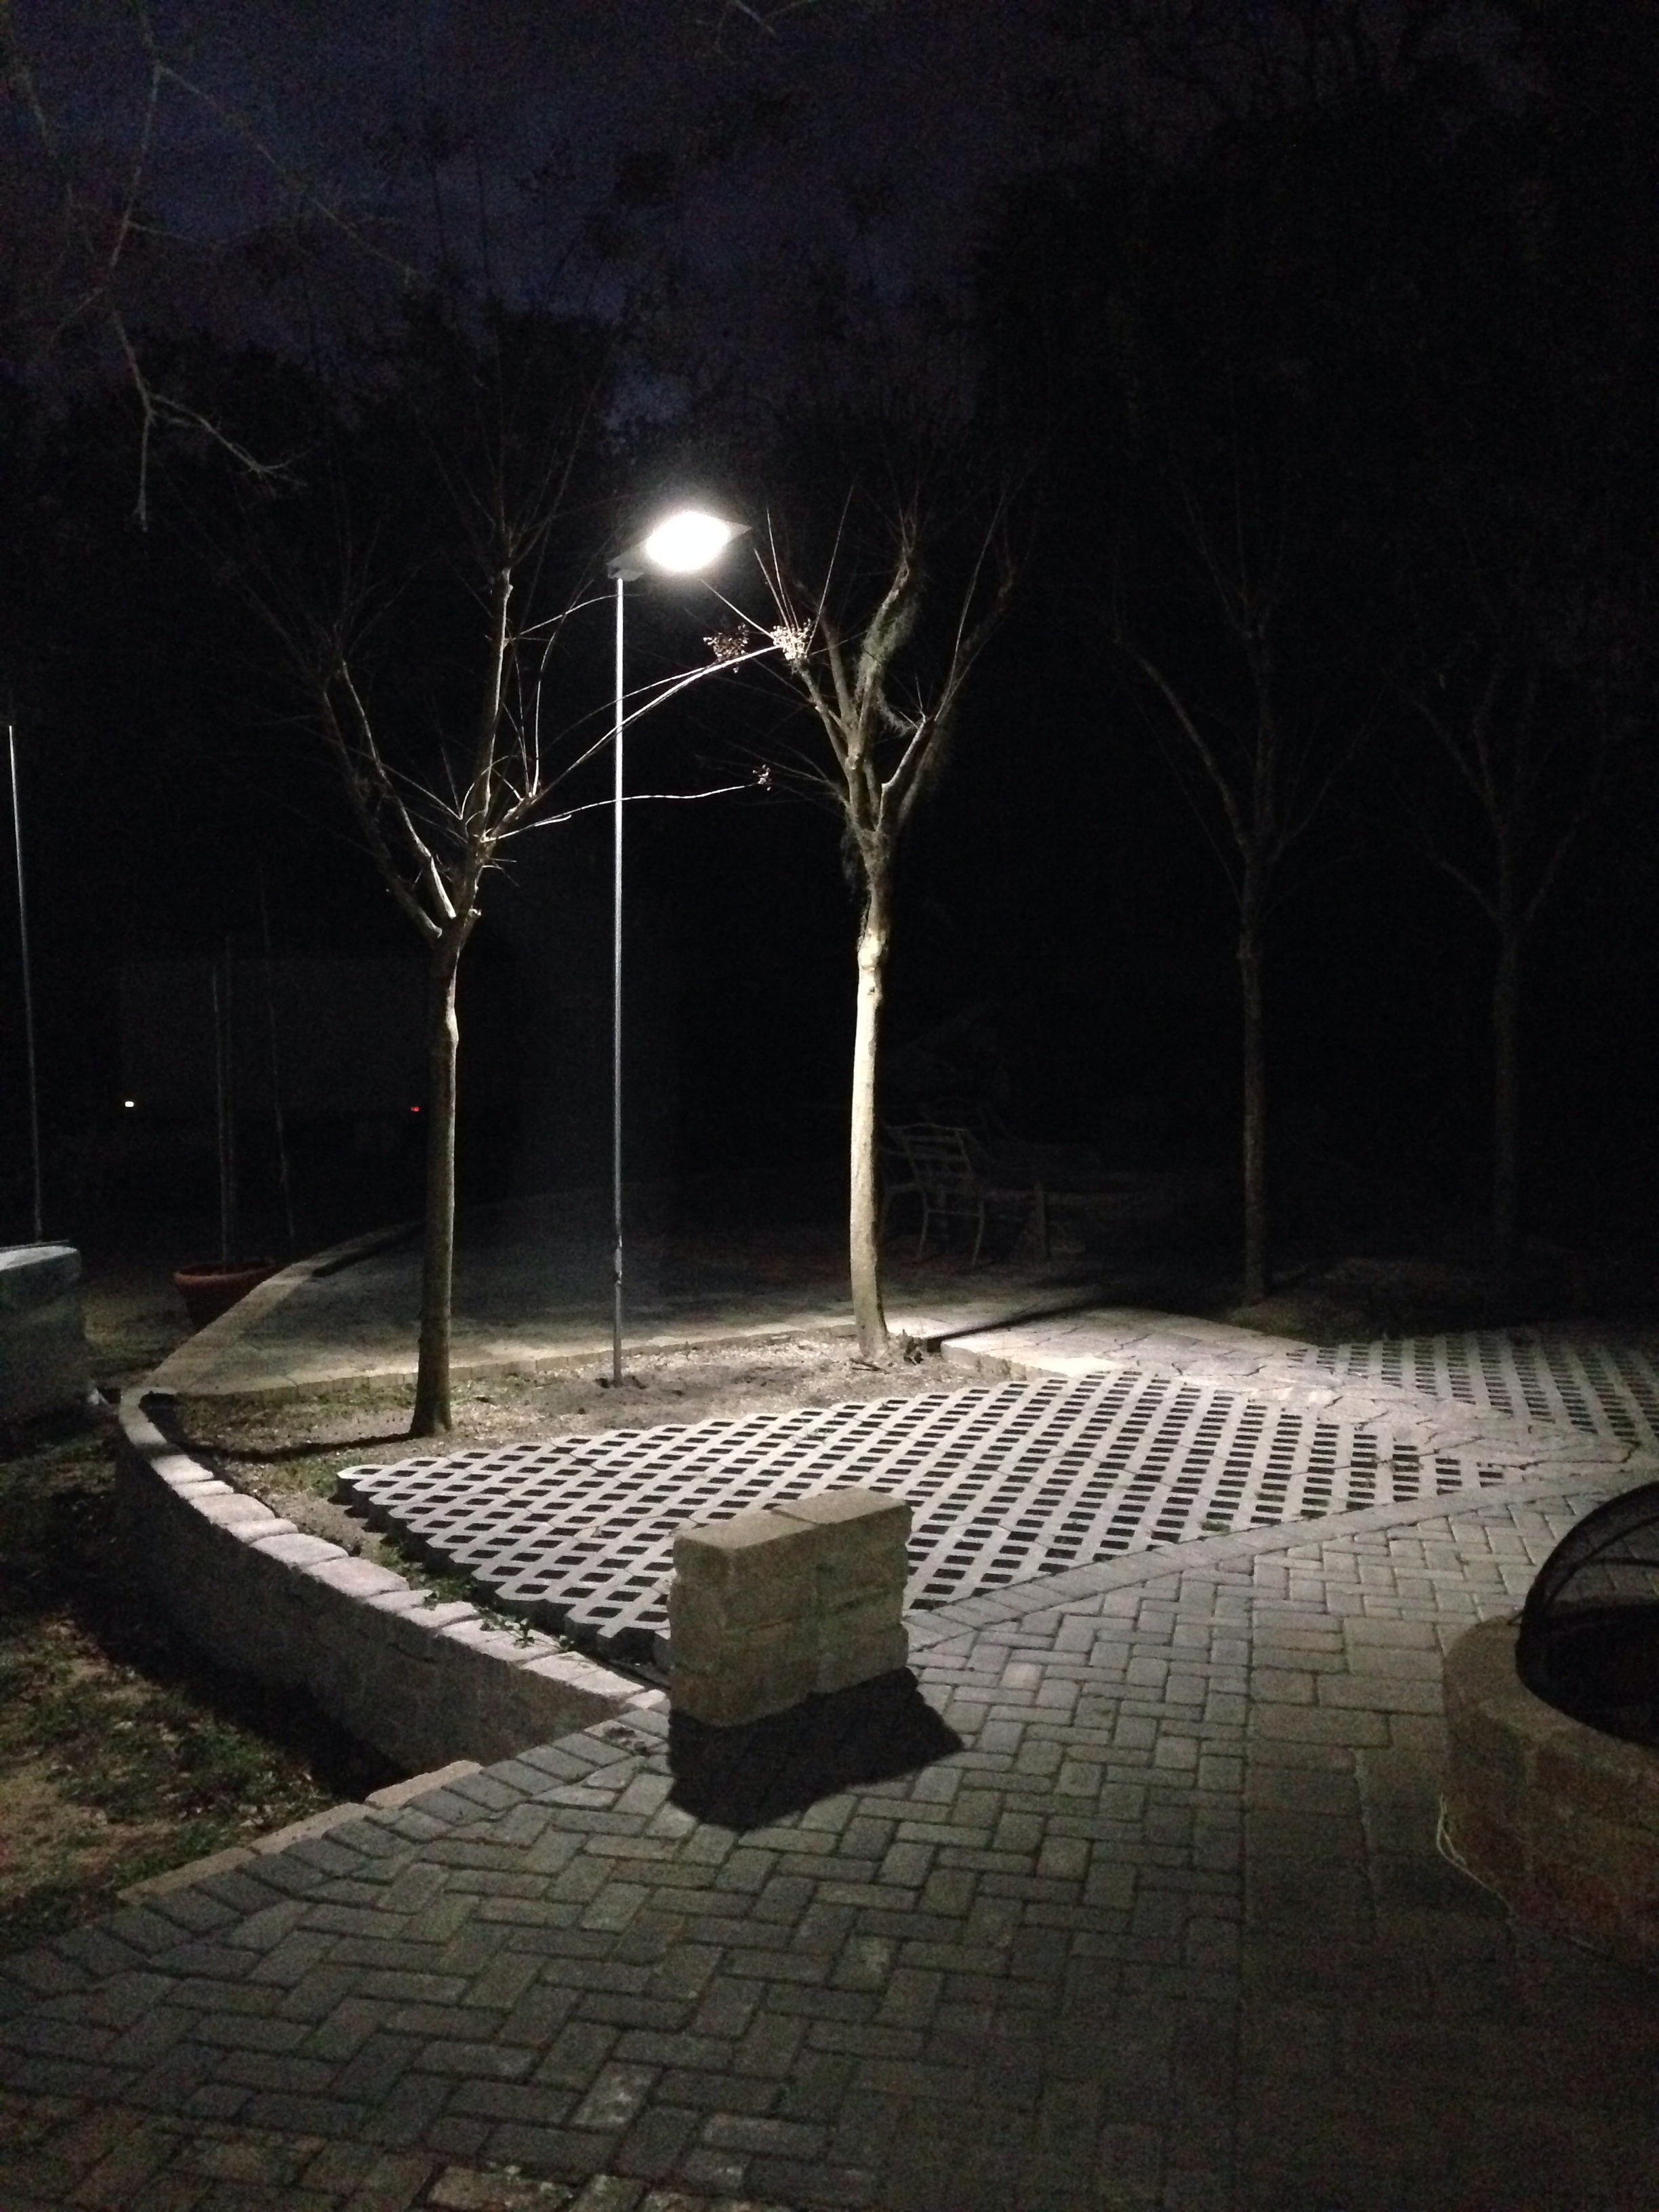 Solar Omega Street Light Park Lighting Security Compound Diagram Of Powered Led With Auto Intensity Control